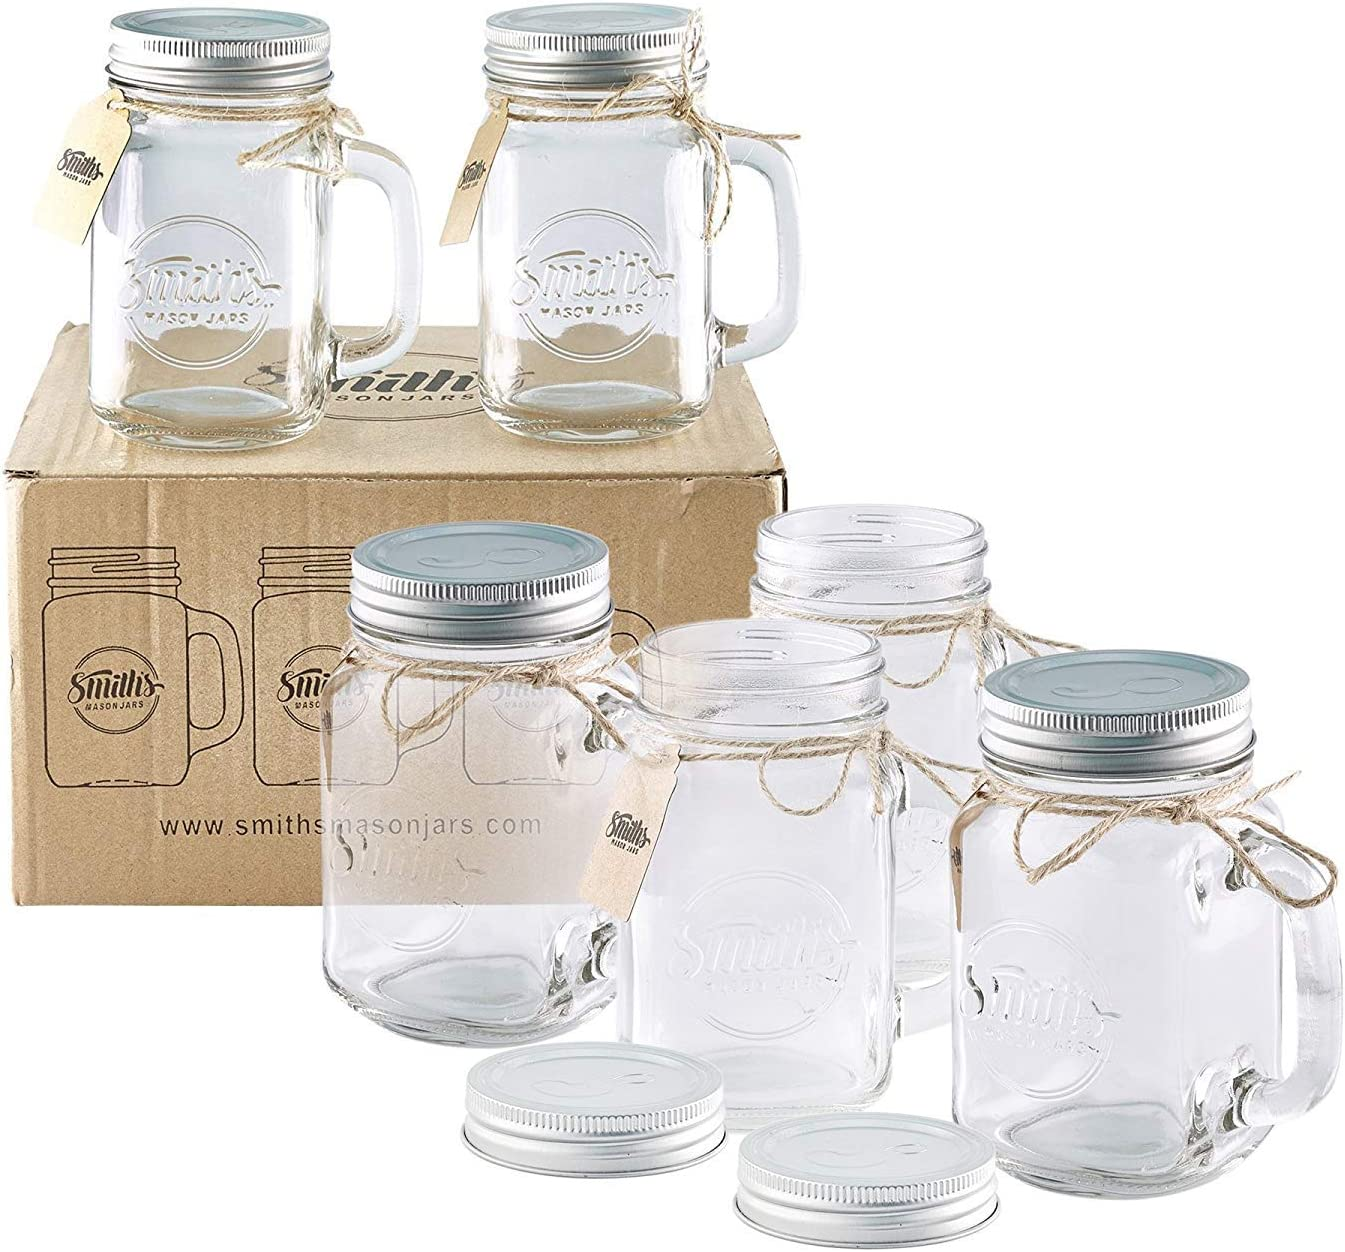 Smith's Mason Jars NEW before selling ☆ 6 x New arrival 16oz jars Mugs Jar pint scre with